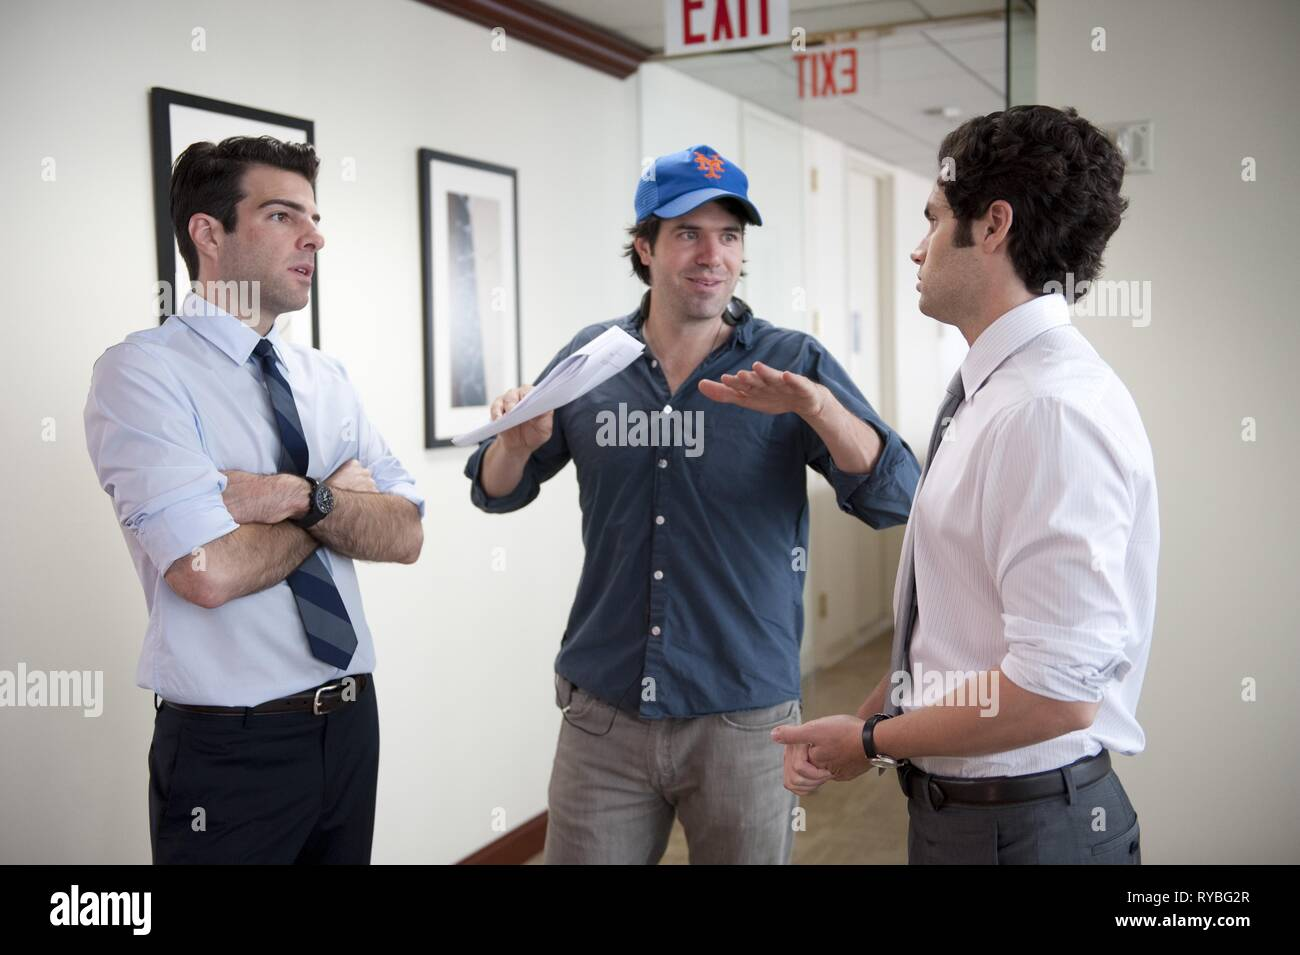 ZACHARY QUINTO, J.C. CHANDOR,PENN BADGLEY, MARGIN CALL, 2011 - Stock Image